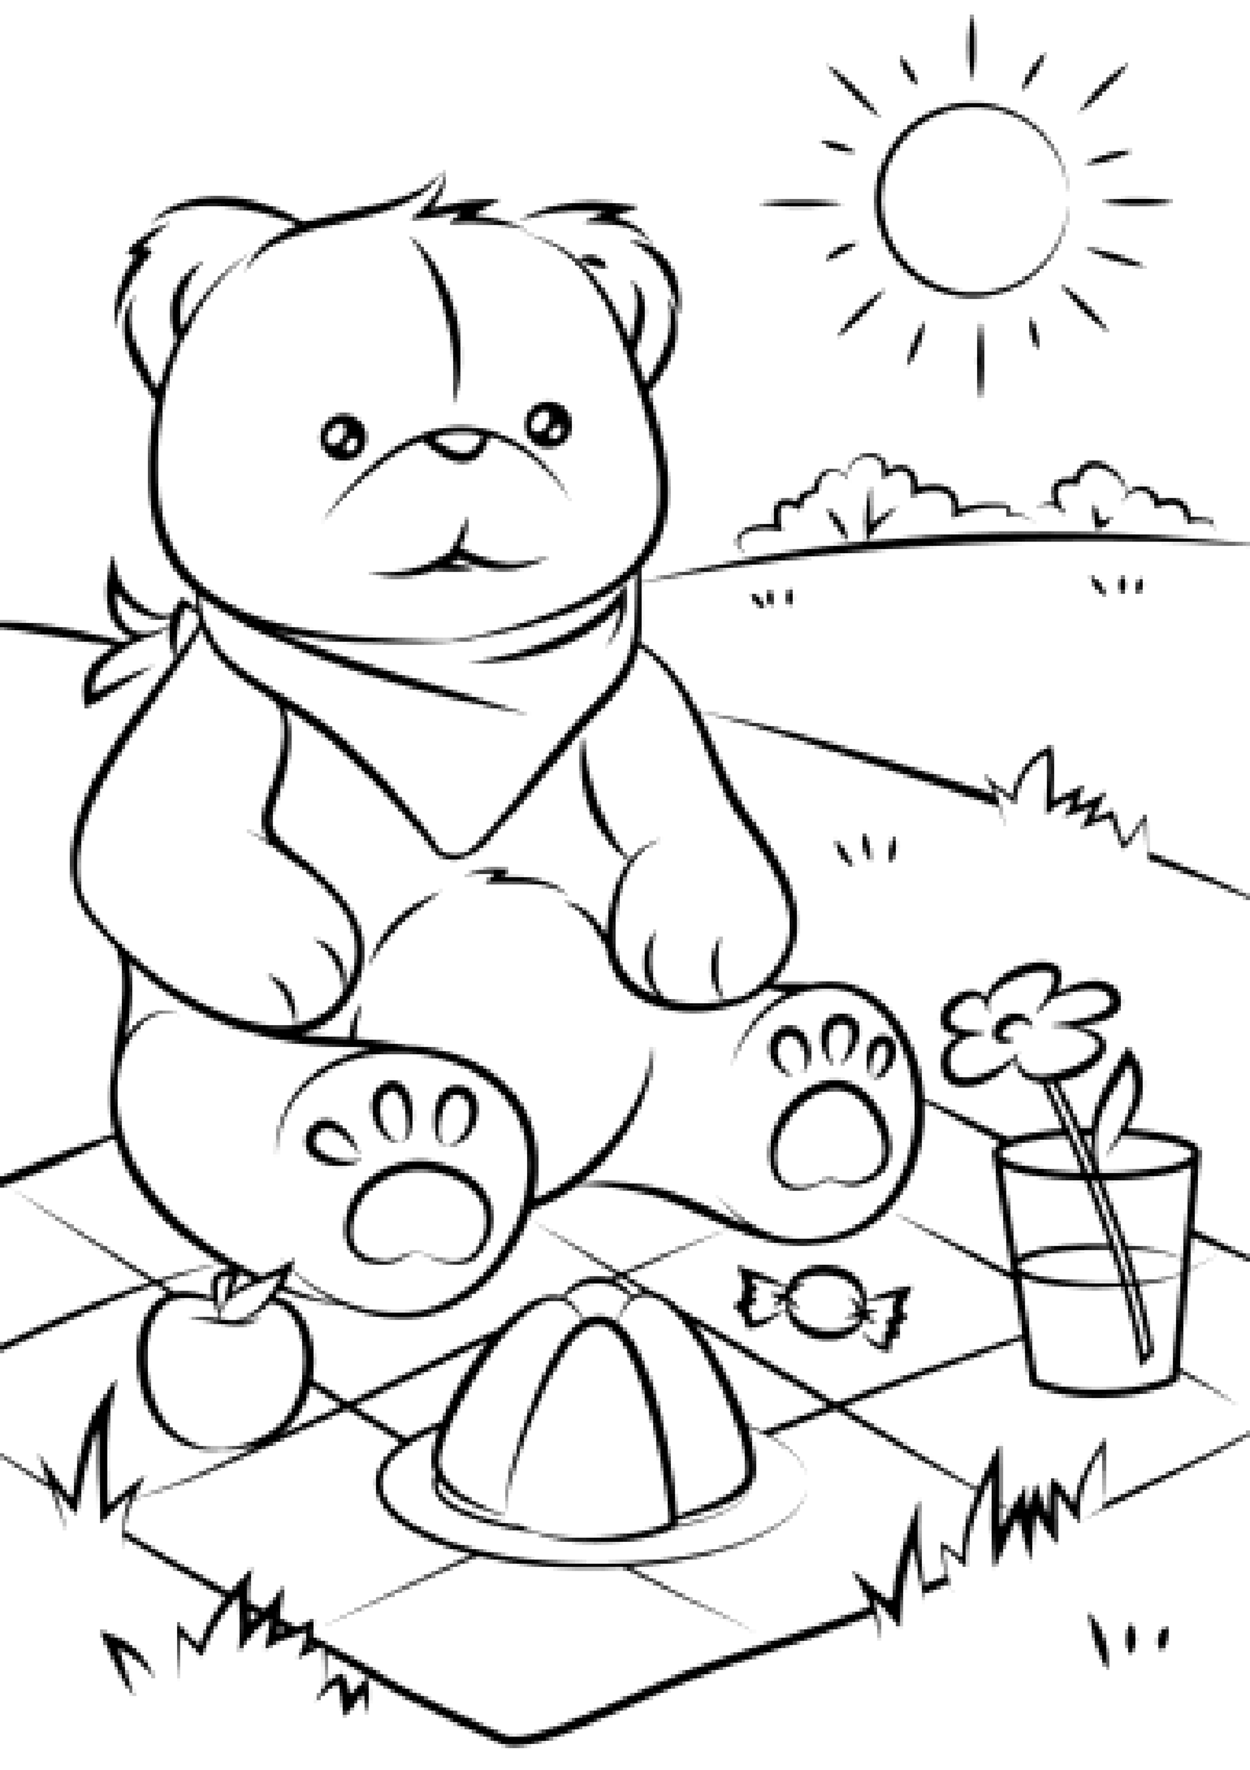 coloring pages of bears bears to print bears kids coloring pages of coloring pages bears